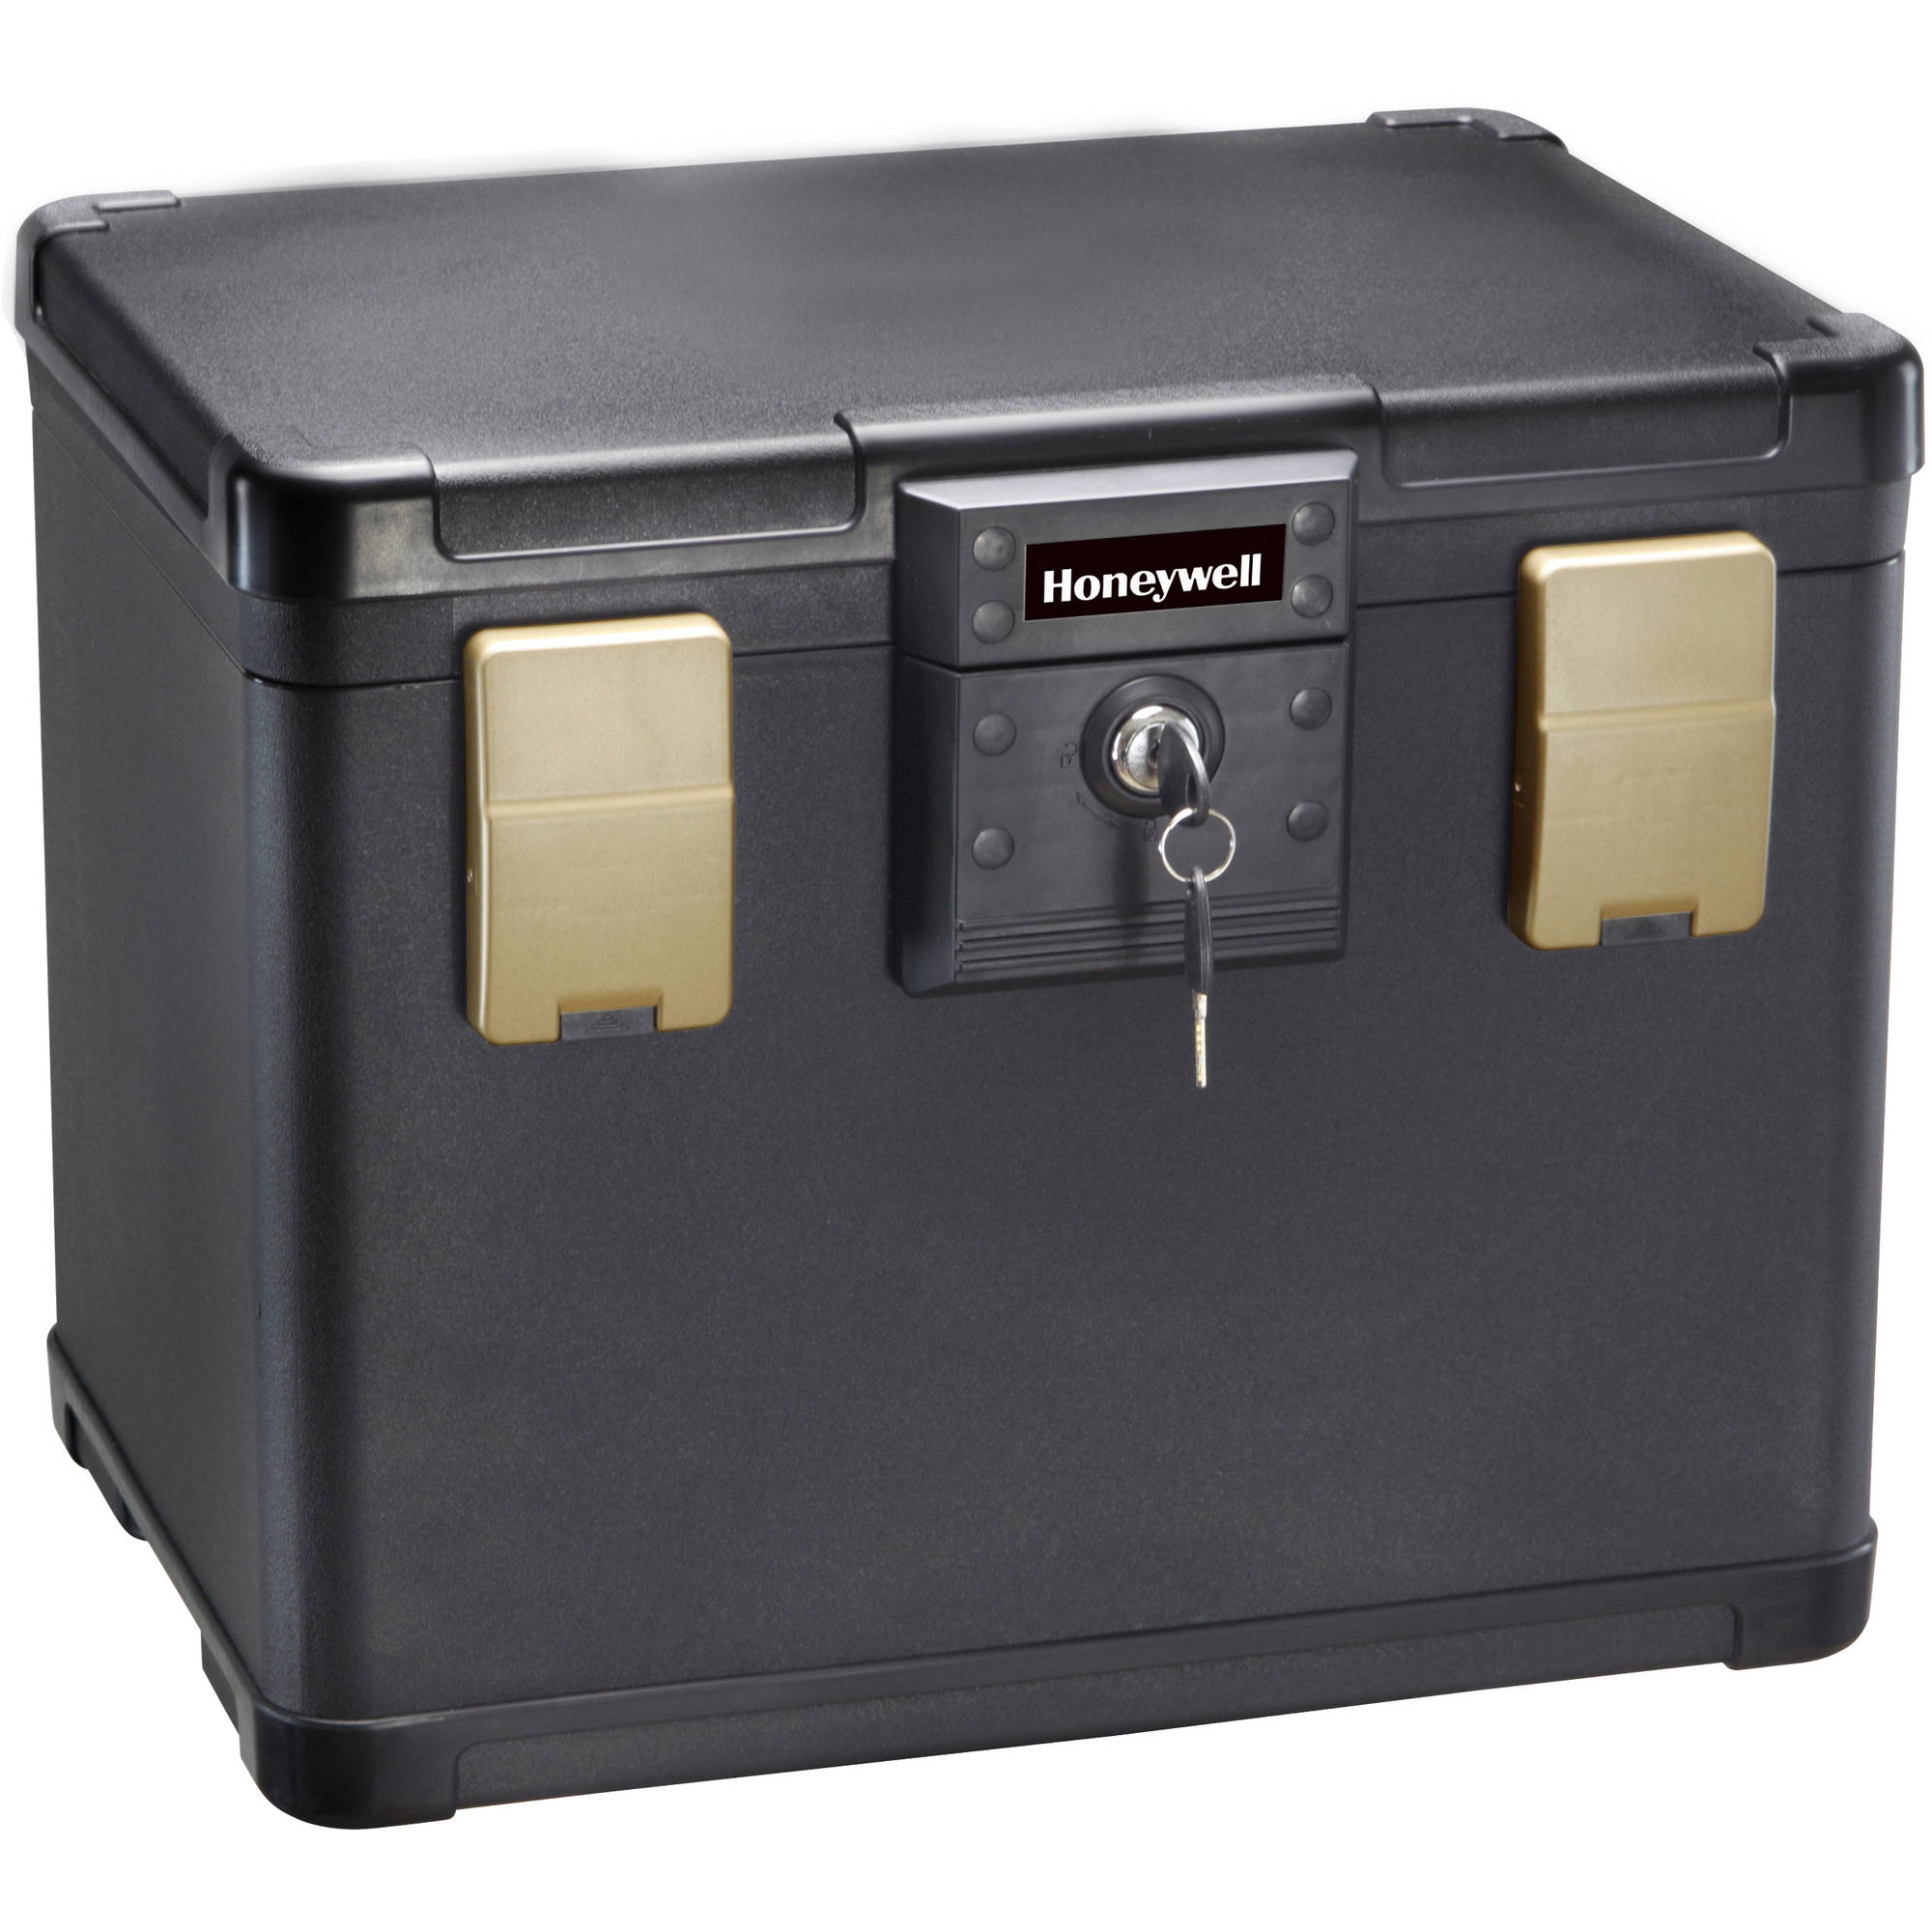 Honeywell .6 cu ft Letter and A4 Size Waterproof 30-Minute Fire Chest, 1106